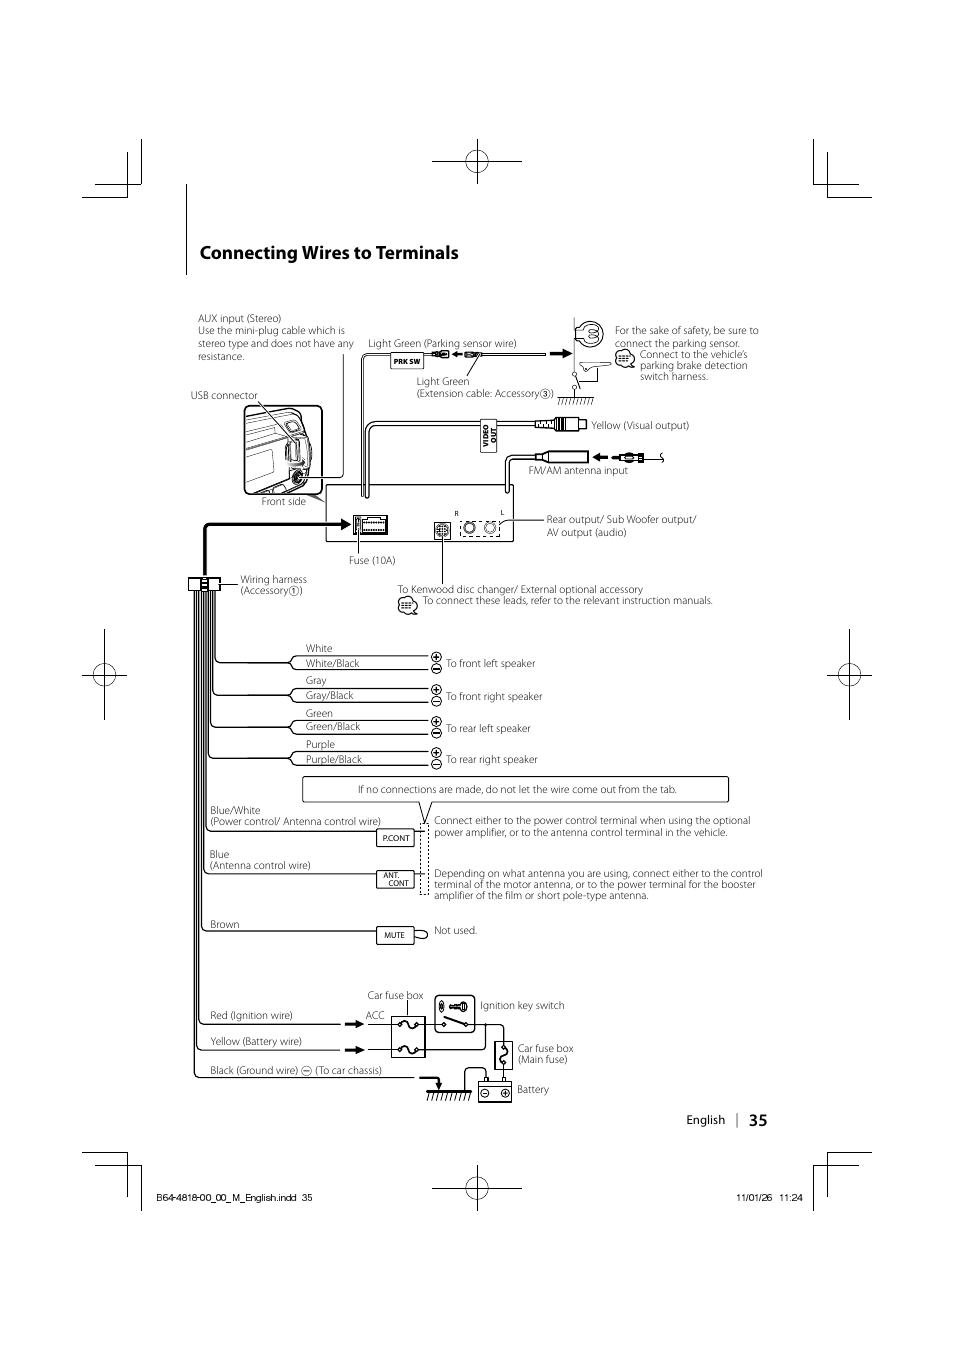 Connecting wires to terminals | Kenwood KDV-U4349 User ... on jvc wiring diagram, nissan maxima audio wiring diagram, clarion wiring diagram, alpine wiring diagram, reading wiring diagram, samsung wiring diagram, jackson wiring diagram, apple wiring diagram, concord wiring diagram, lincoln wiring diagram, hayward wiring diagram, ge wiring diagram, rca wiring diagram, fisher wiring diagram, sony wiring diagram, jl audio wiring diagram, panasonic wiring diagram, pioneer wiring diagram, jensen wiring diagram, columbia wiring diagram,